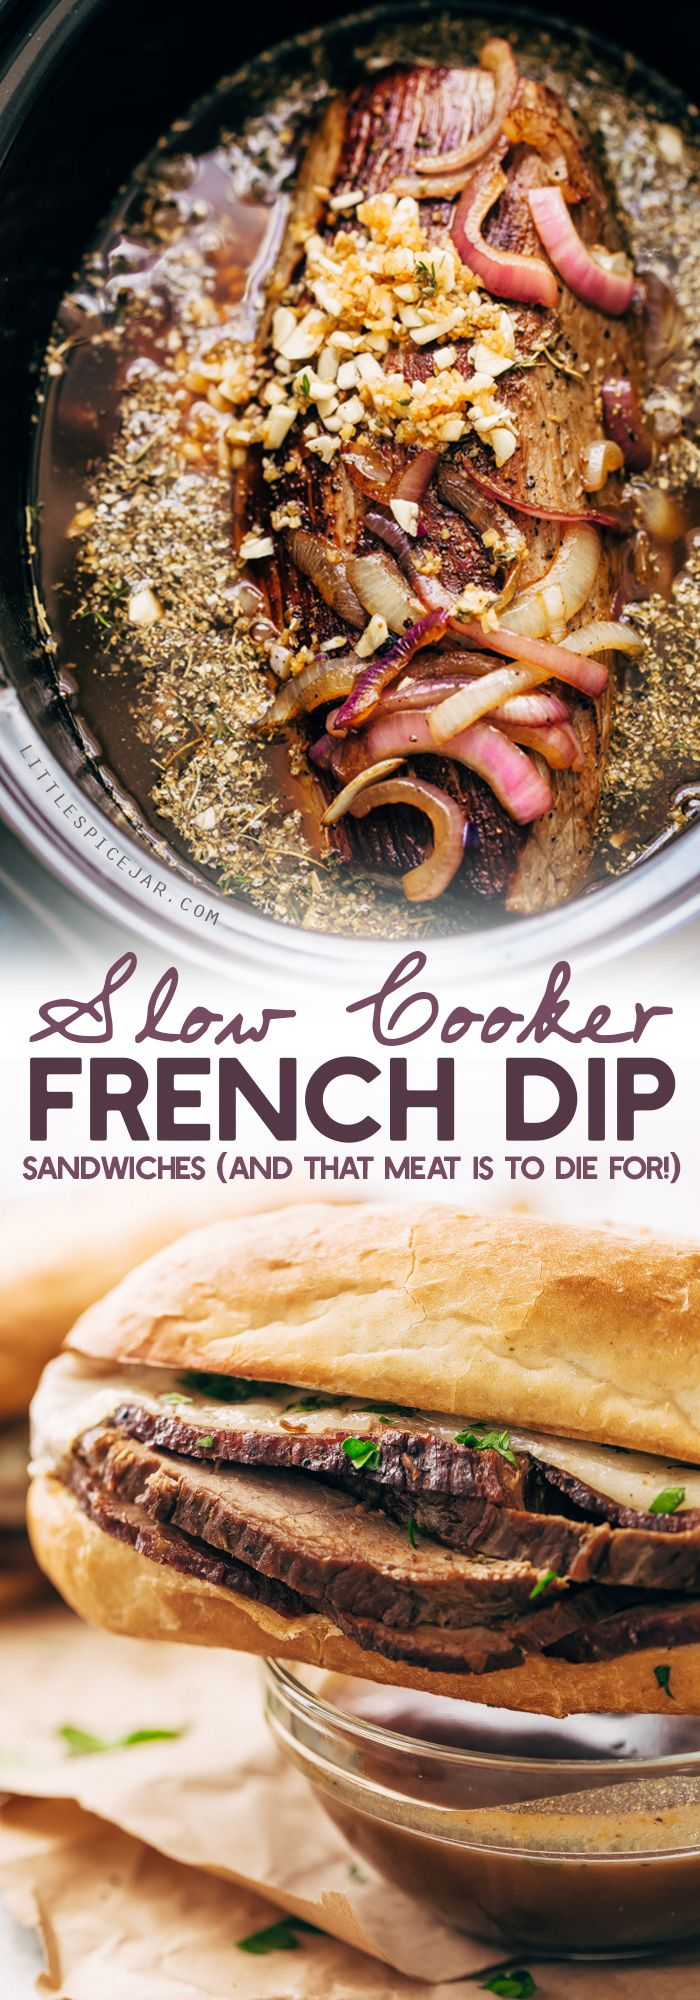 Slow Cooker French Dip Sandwiches - Tender beef that's slow cooked in au jus. These sandwiches are to die for! #frenchdip #frenchdipsandwich #frenchdipsandwiches #slowcooker #crockpot | Littlespicejar.com